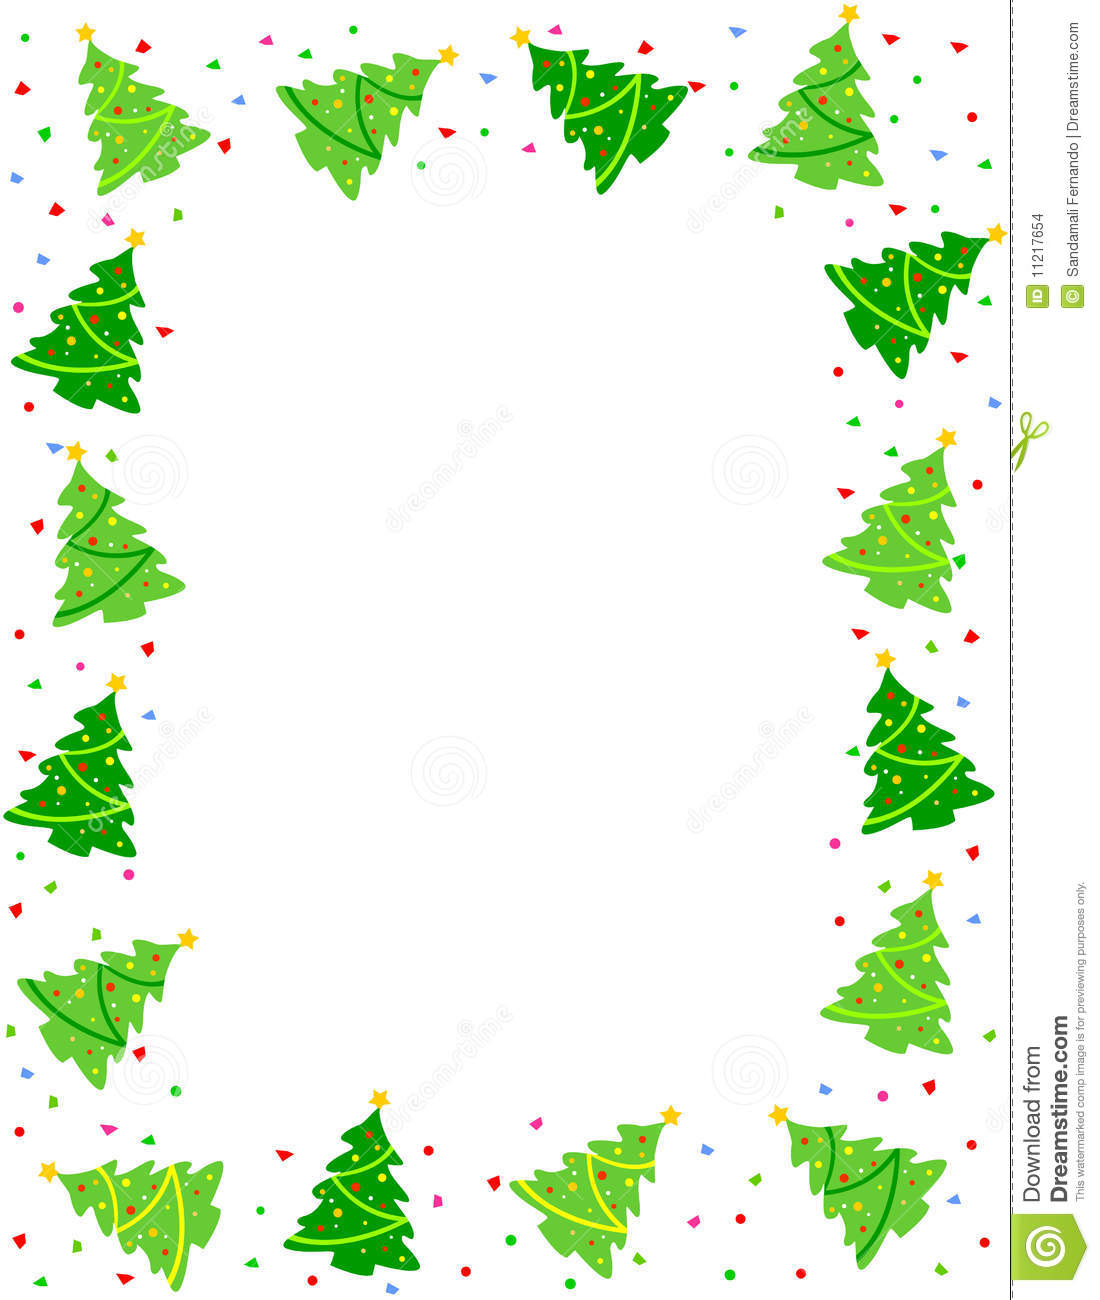 Christmas Tree Borders Clip Art Images P-Christmas Tree Borders Clip Art Images Pictures Becuo-18